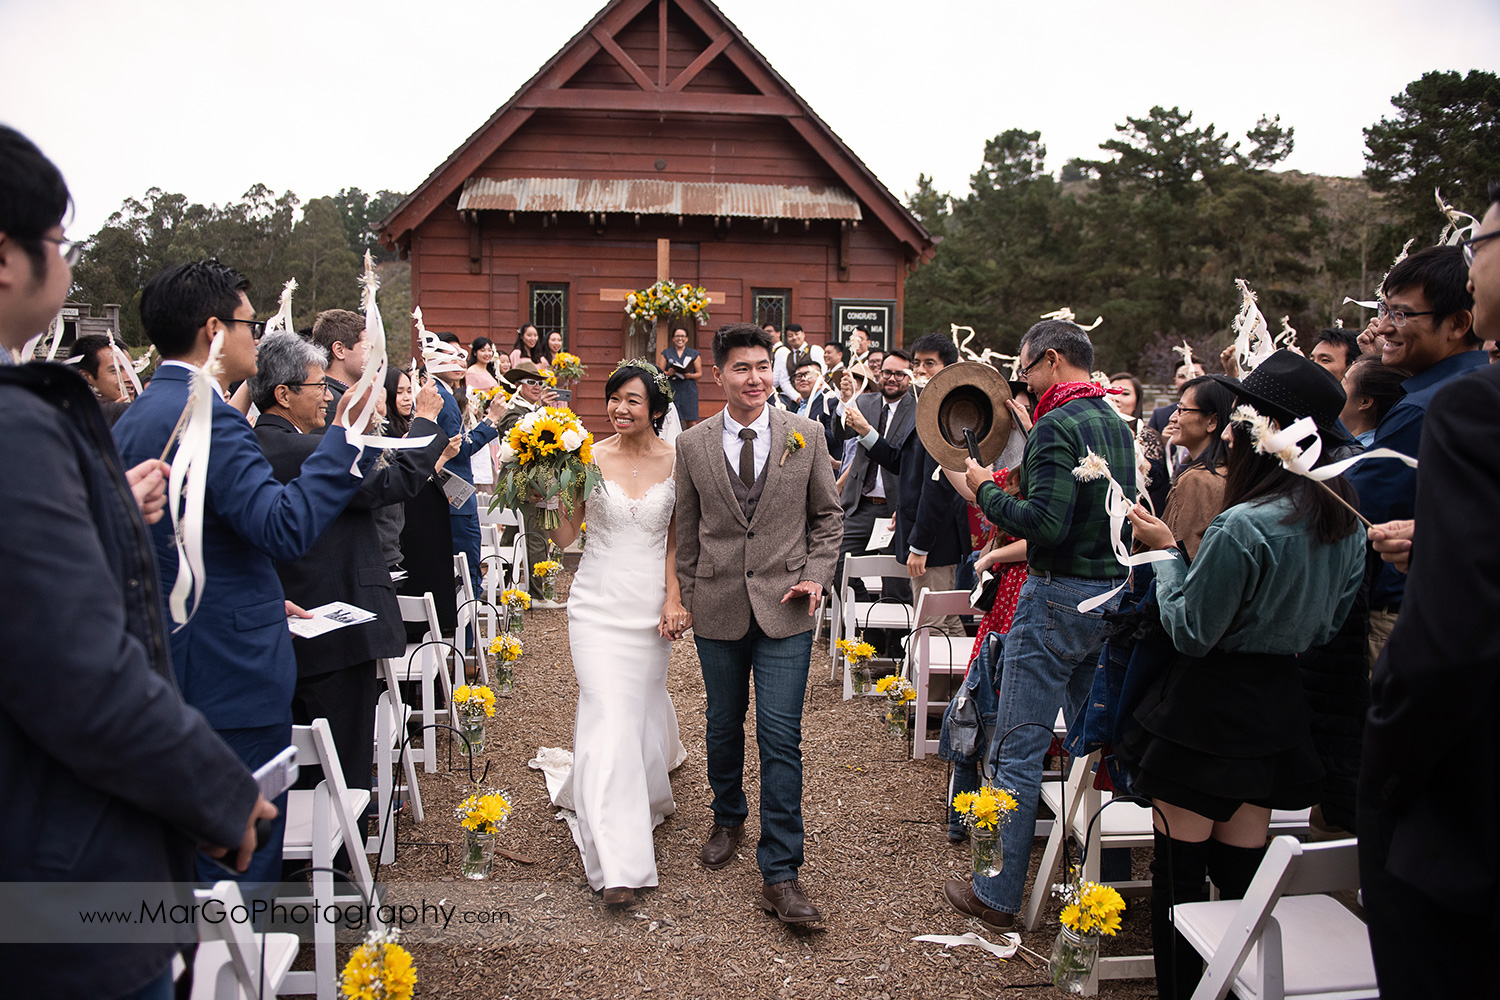 bride and groom walking down th aisle after wedding ceremony at Long Branch Saloon & Farms in Half Moon Bay